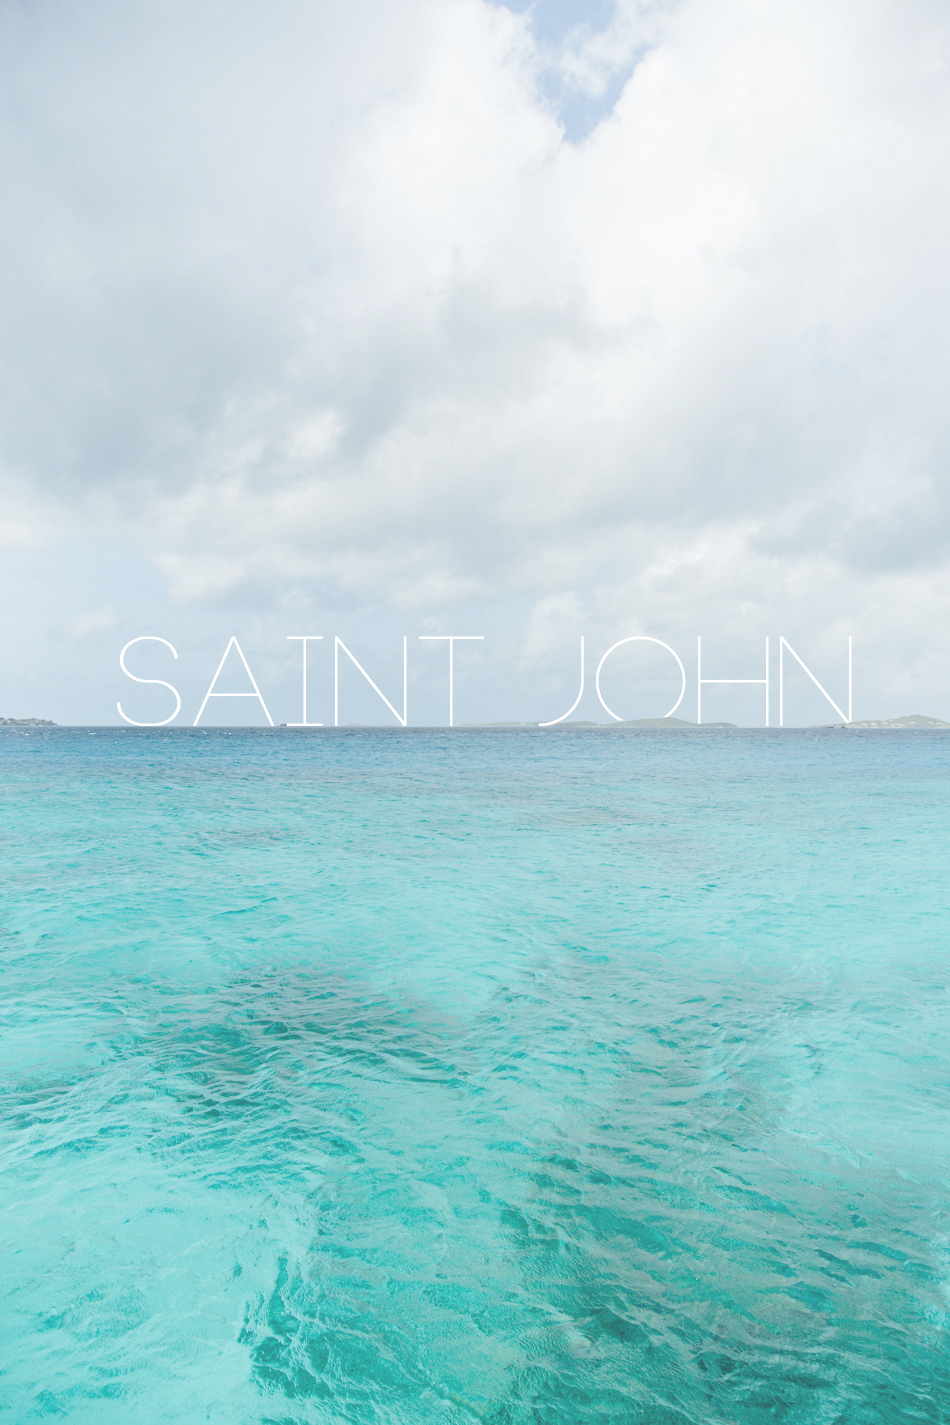 Saint John by Paige Jones